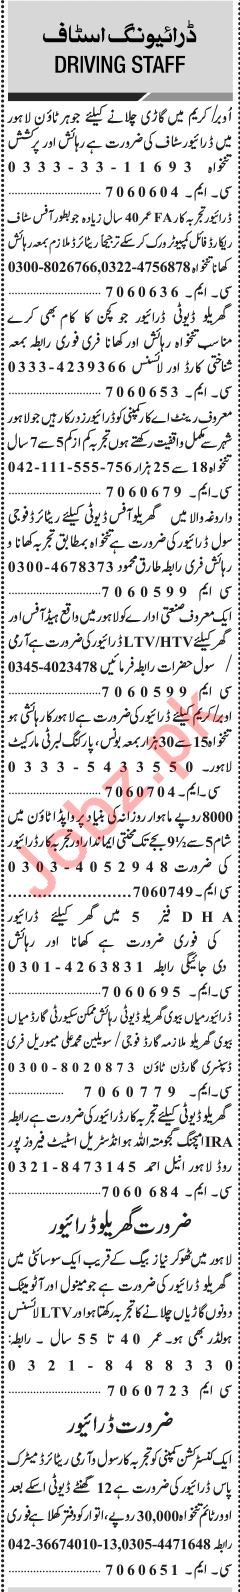 Jang Sunday Classified Ads 10th Feb 2019 for Driving Staff